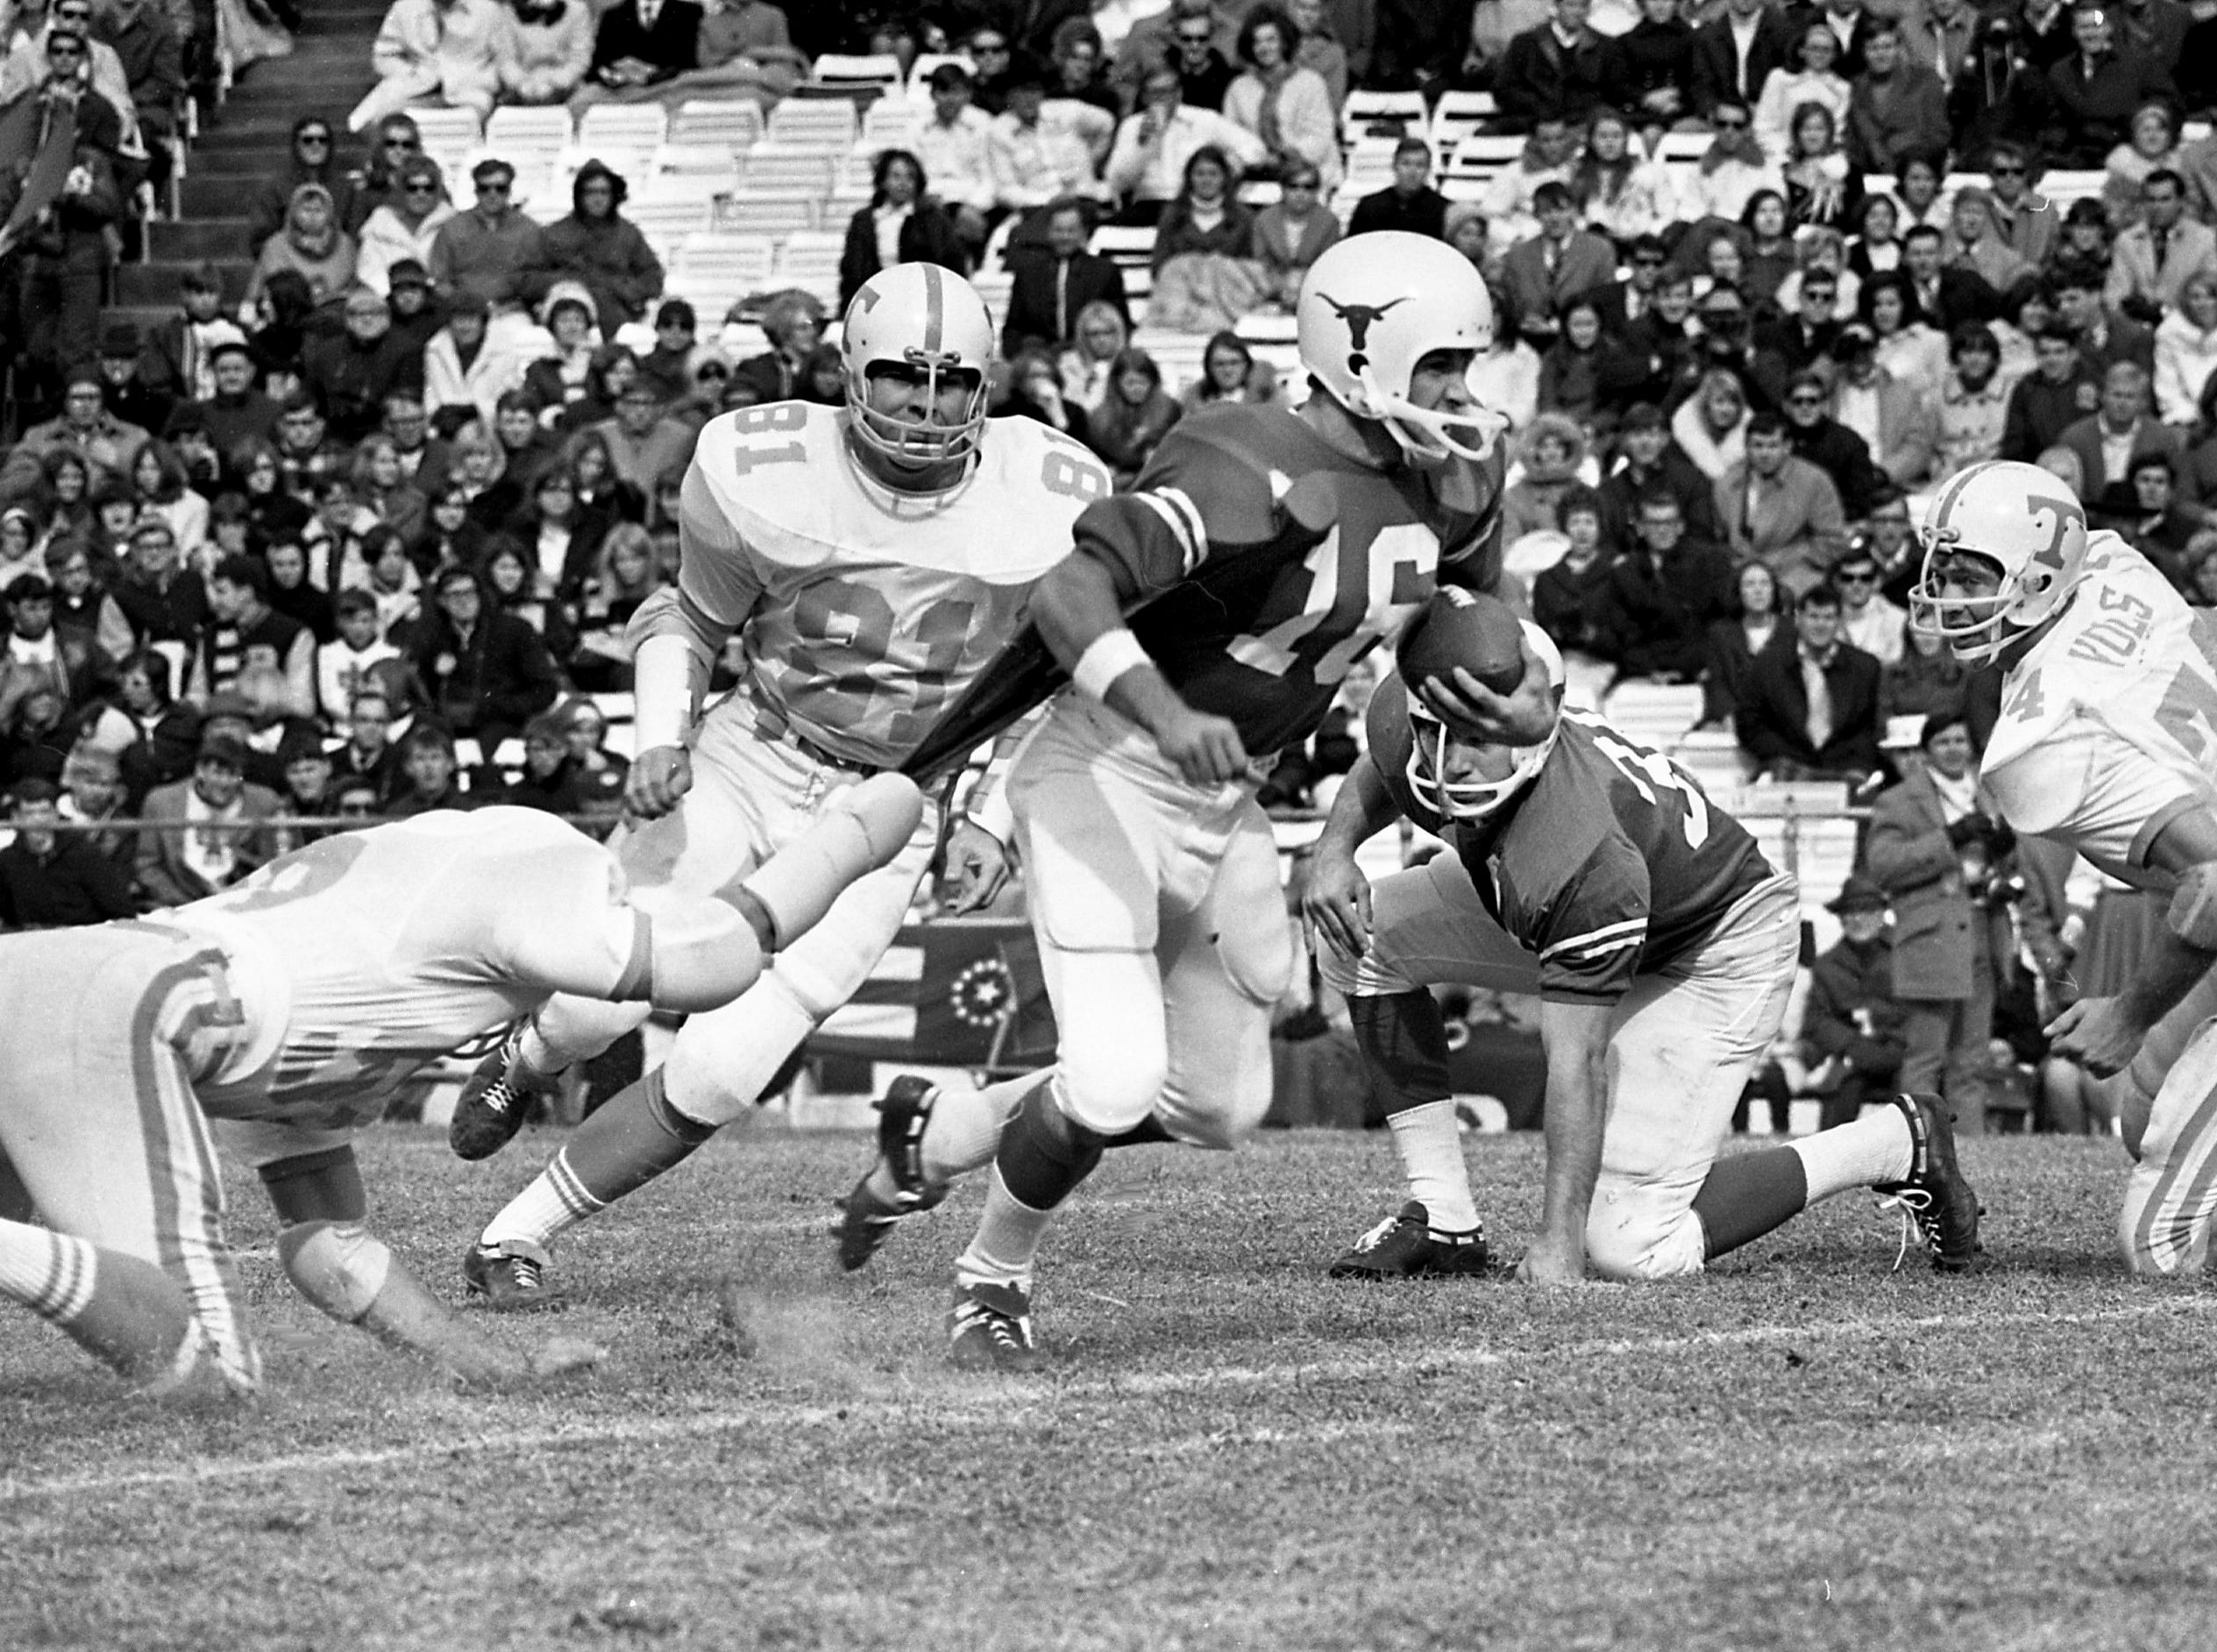 A Tennessee defender grabs the jersey of Texas quarterback Jim Street (16) during the Cotton Bowl on Jan. 1, 1969, in Dallas. Texas gored Tennessee 36-13 before 72,000 in the 33rd annual New Year's Day classic.